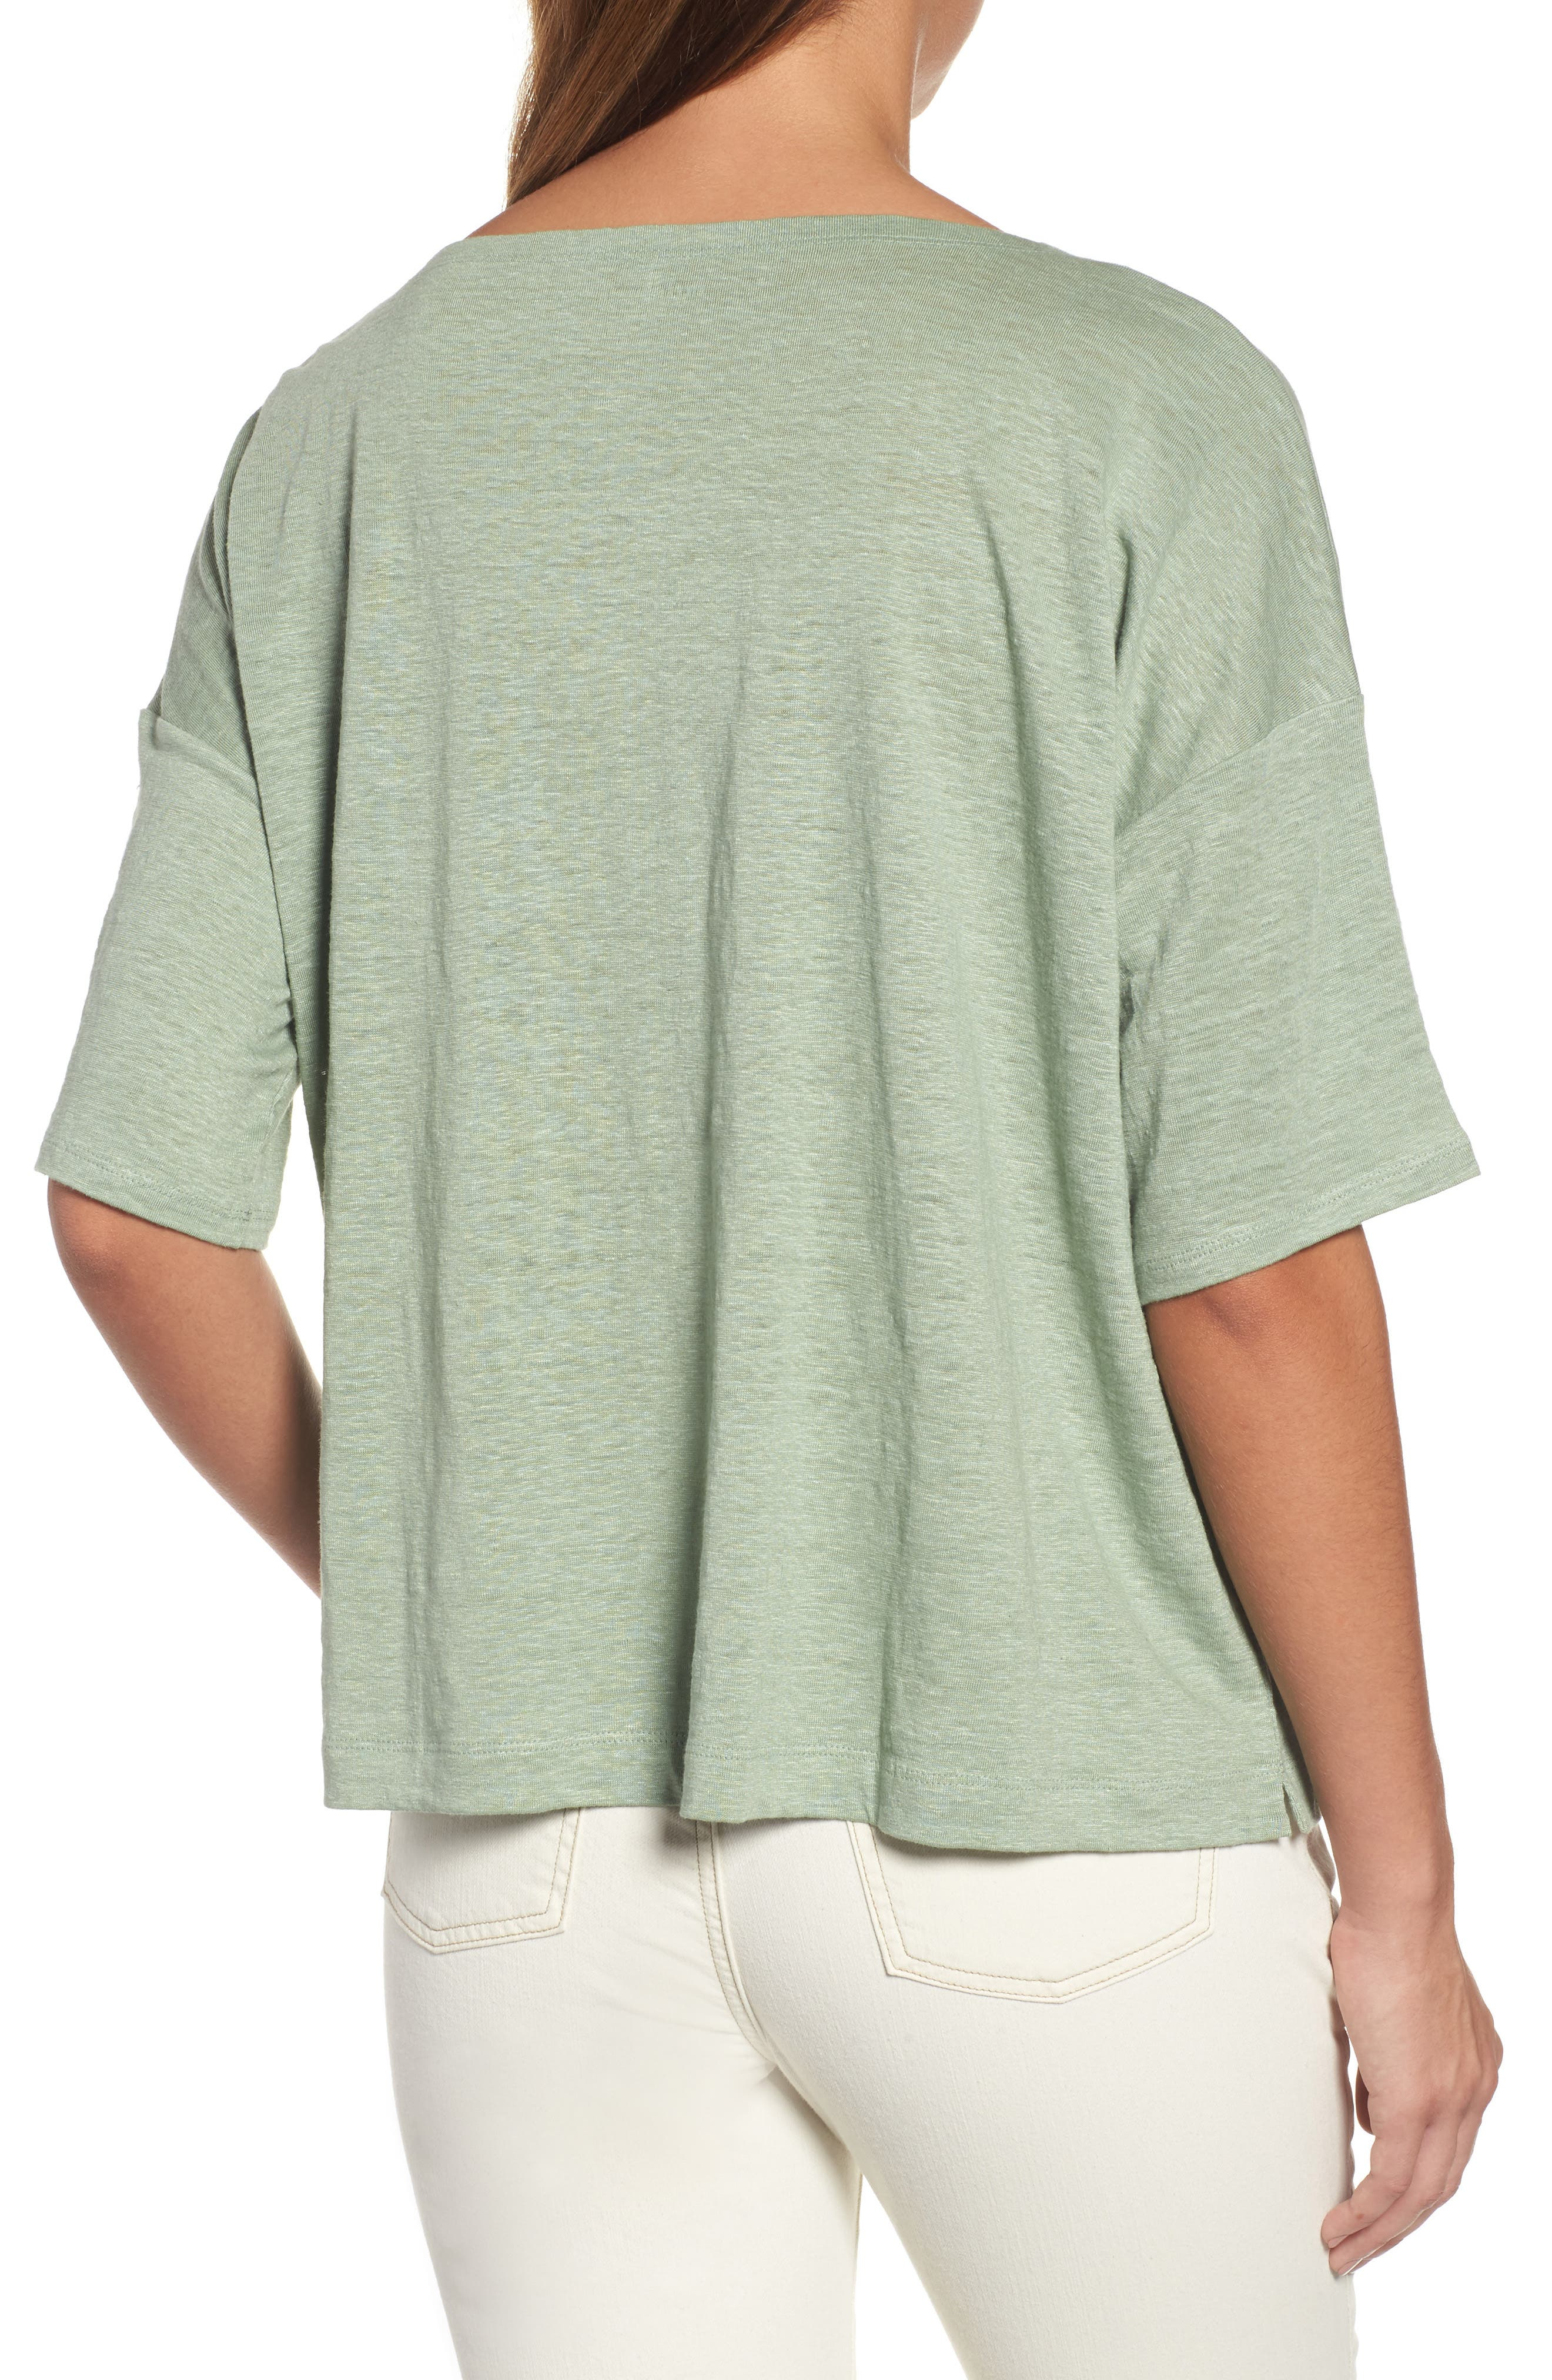 Organic Linen Jersey Boxy Top,                             Alternate thumbnail 11, color,